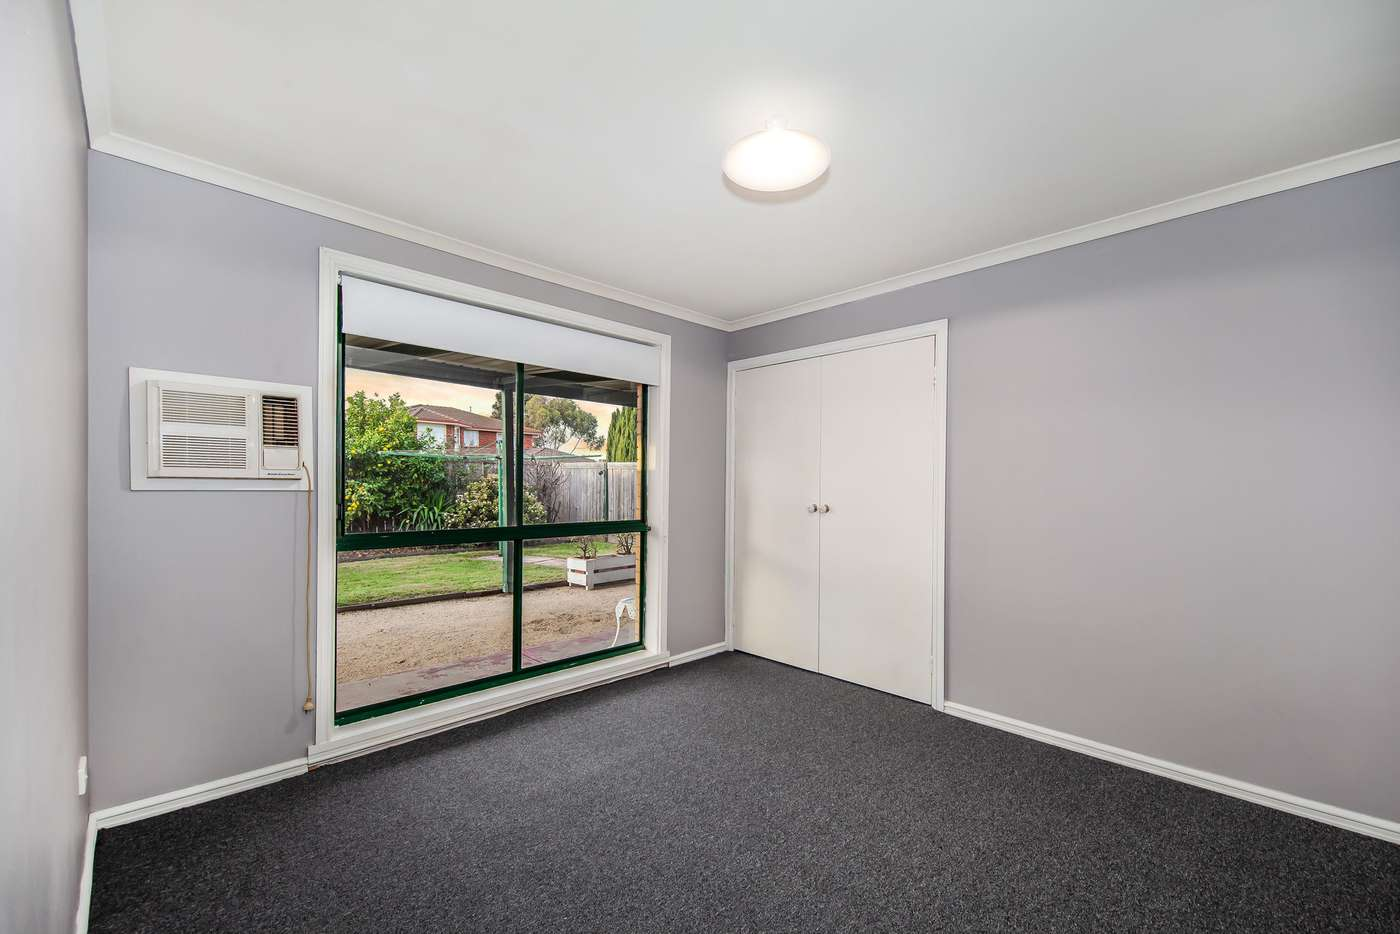 Sixth view of Homely house listing, 2 Crabbe Court, Delahey VIC 3037